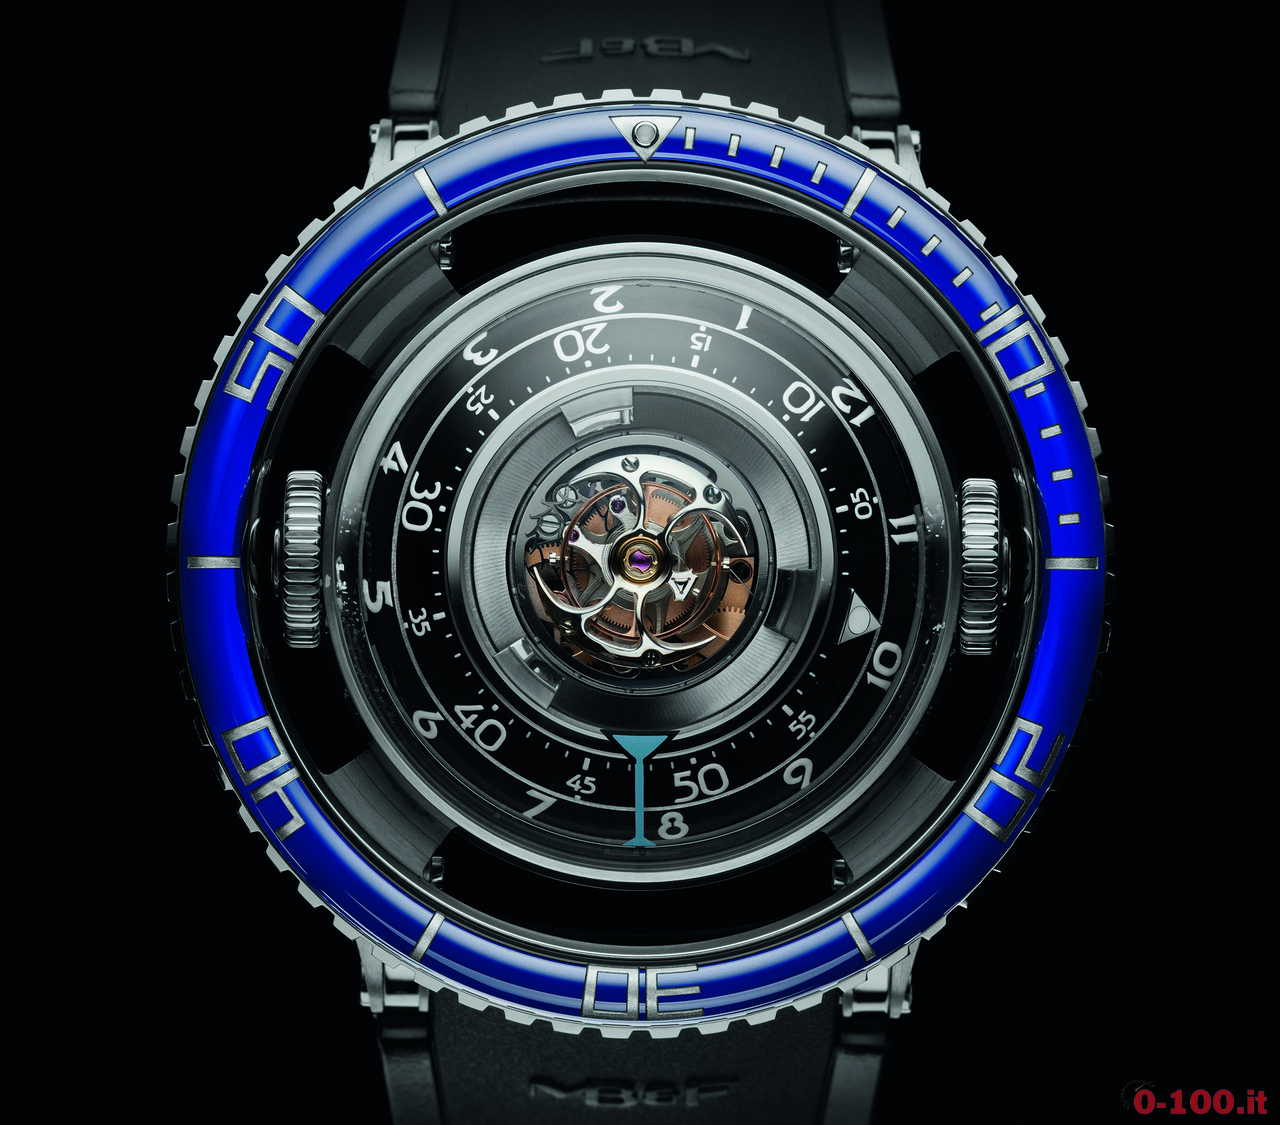 sihh-2017-mbf-horological-machine-n7-aquapod-hm7-aquapod-prezzo-price_0-10012